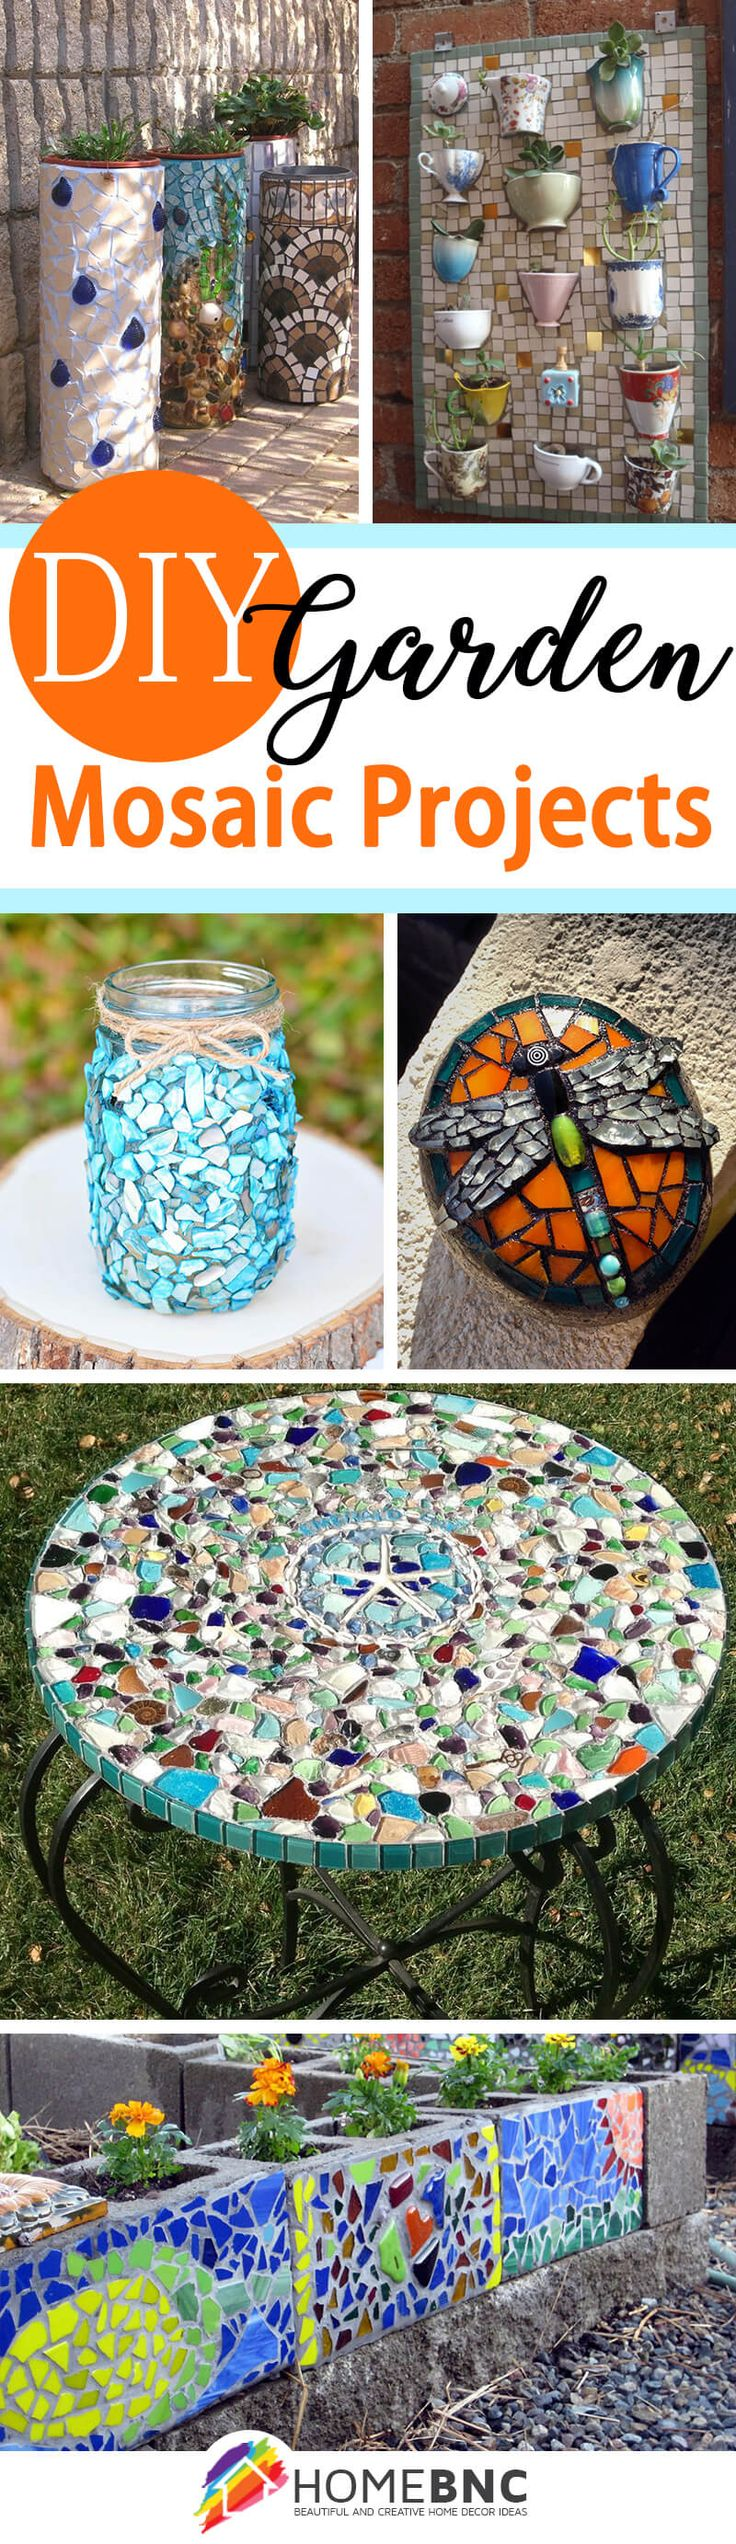 DIY Garden Mosaic Ideas